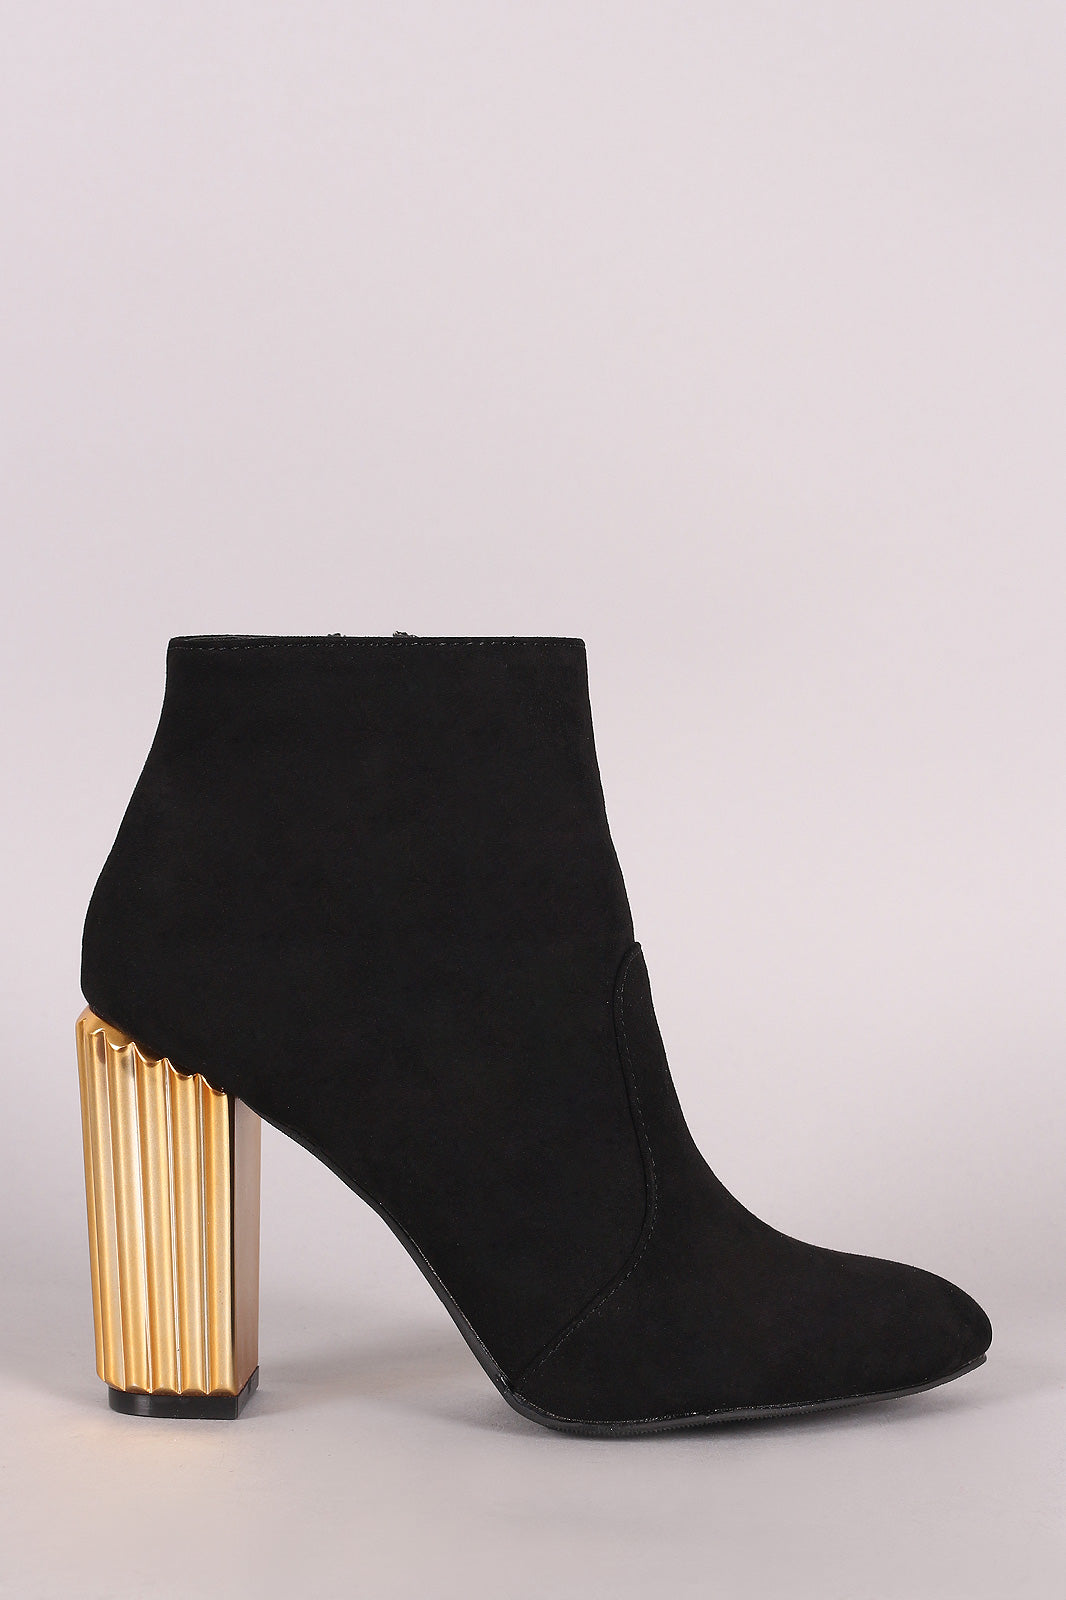 Qupid Suede Pointy Toe Textured Metallic Chunky Heeled Booties